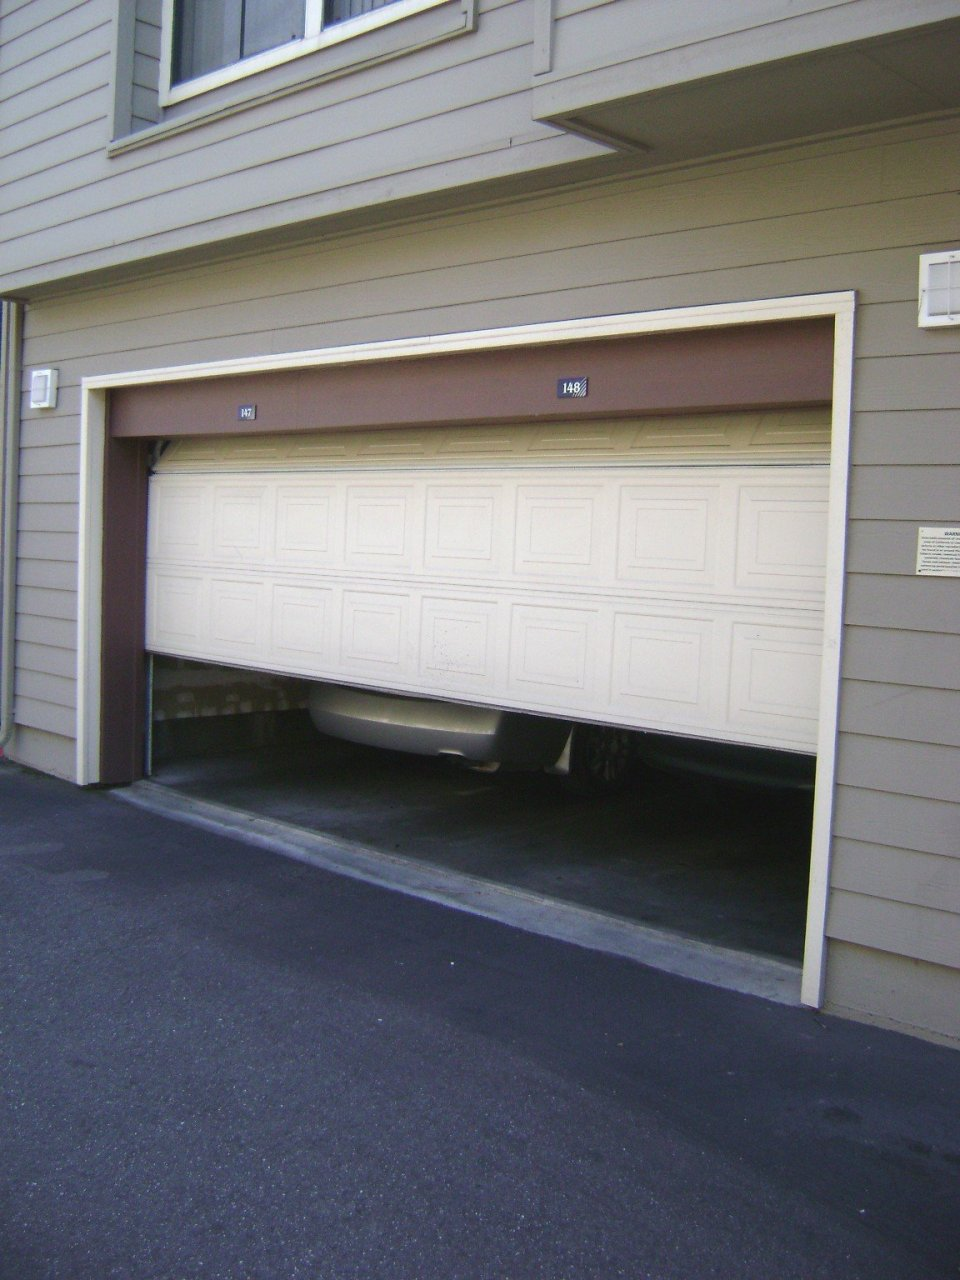 What To Do When Your Garage Door Wonu0027t Close All The Way Jonathan 4 Years  Ago